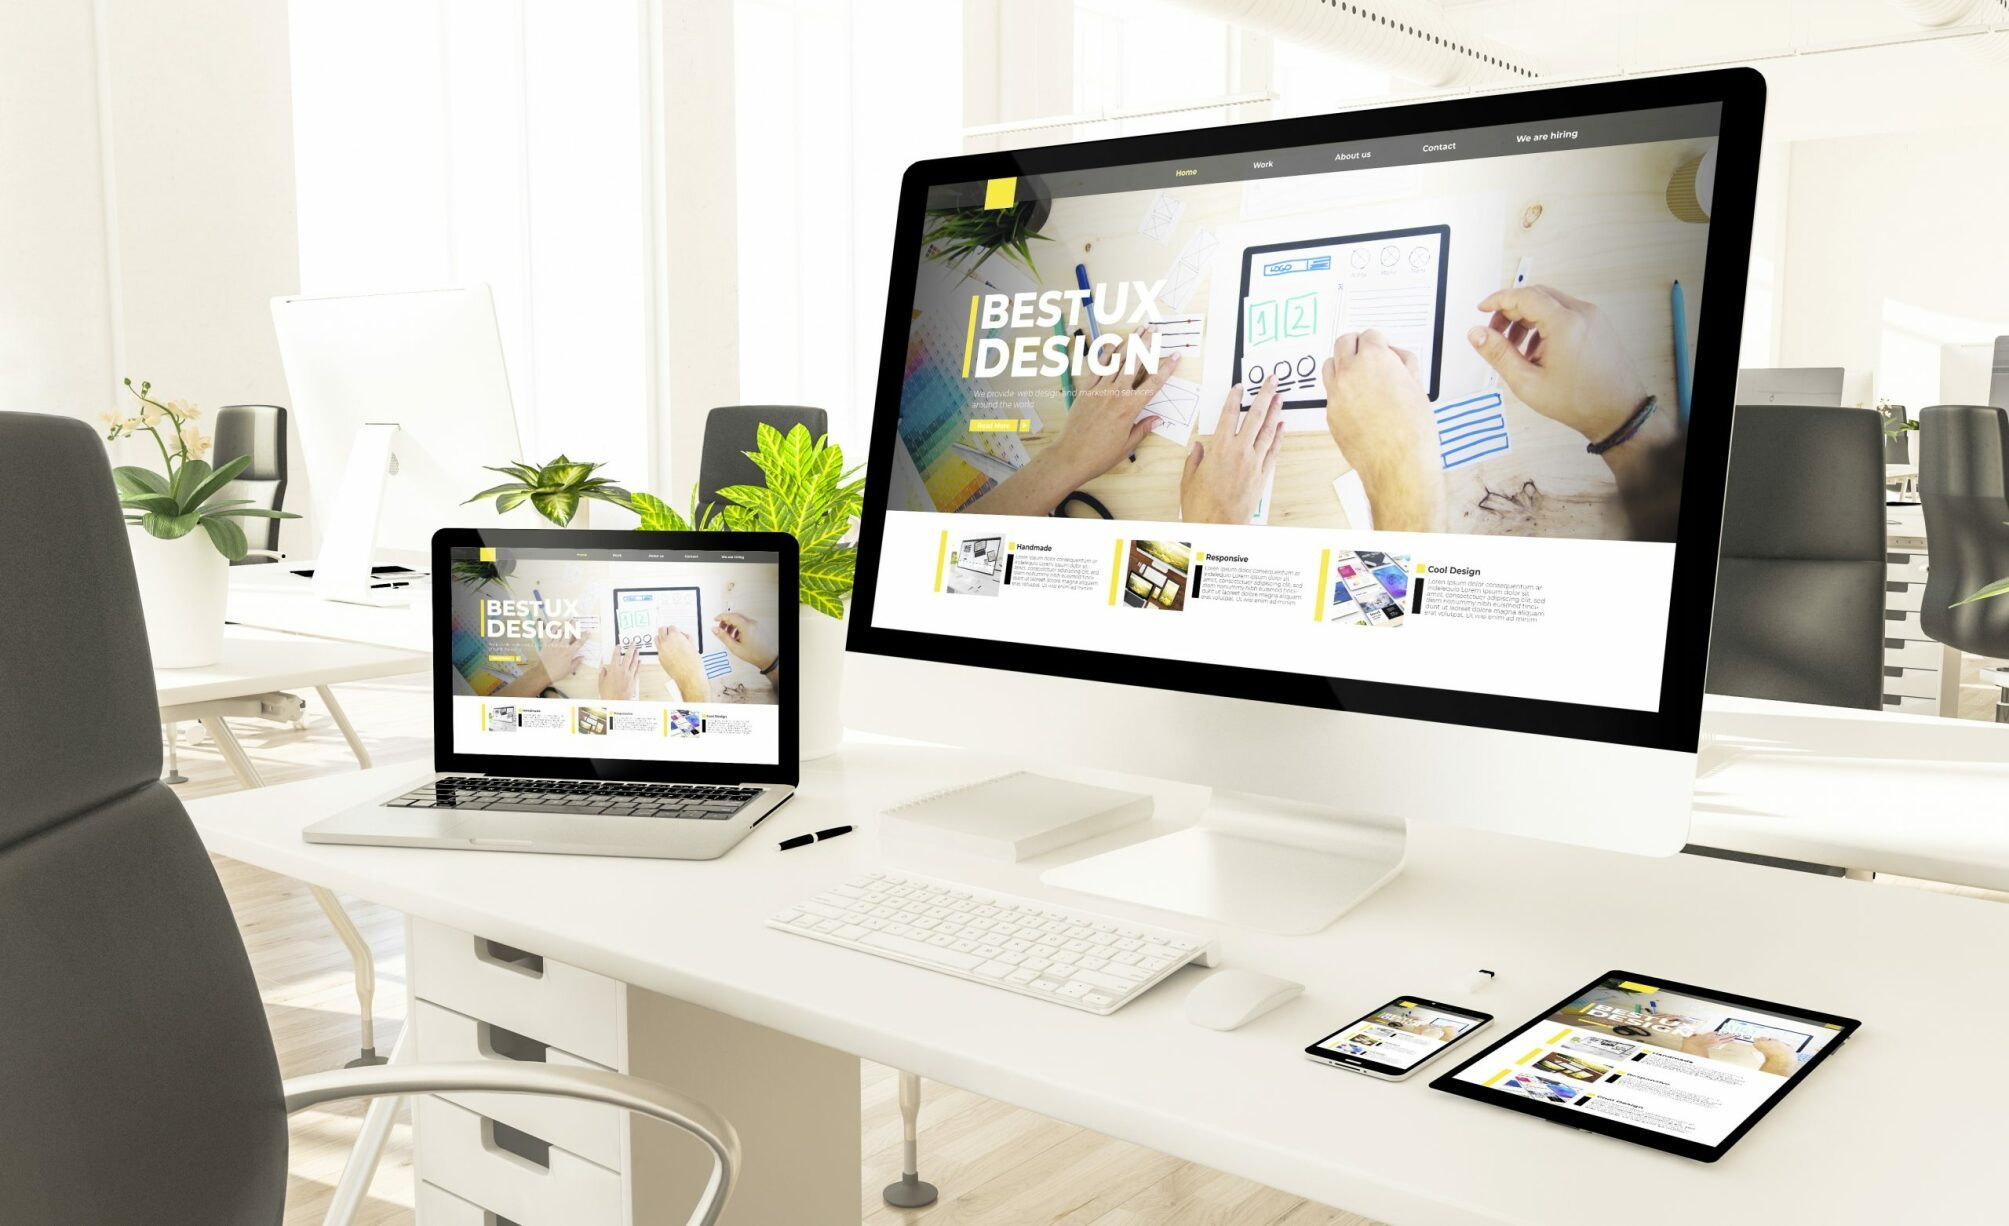 Digitalbyrå i Stockholm - responsive devices with ux design website in loft office mockup